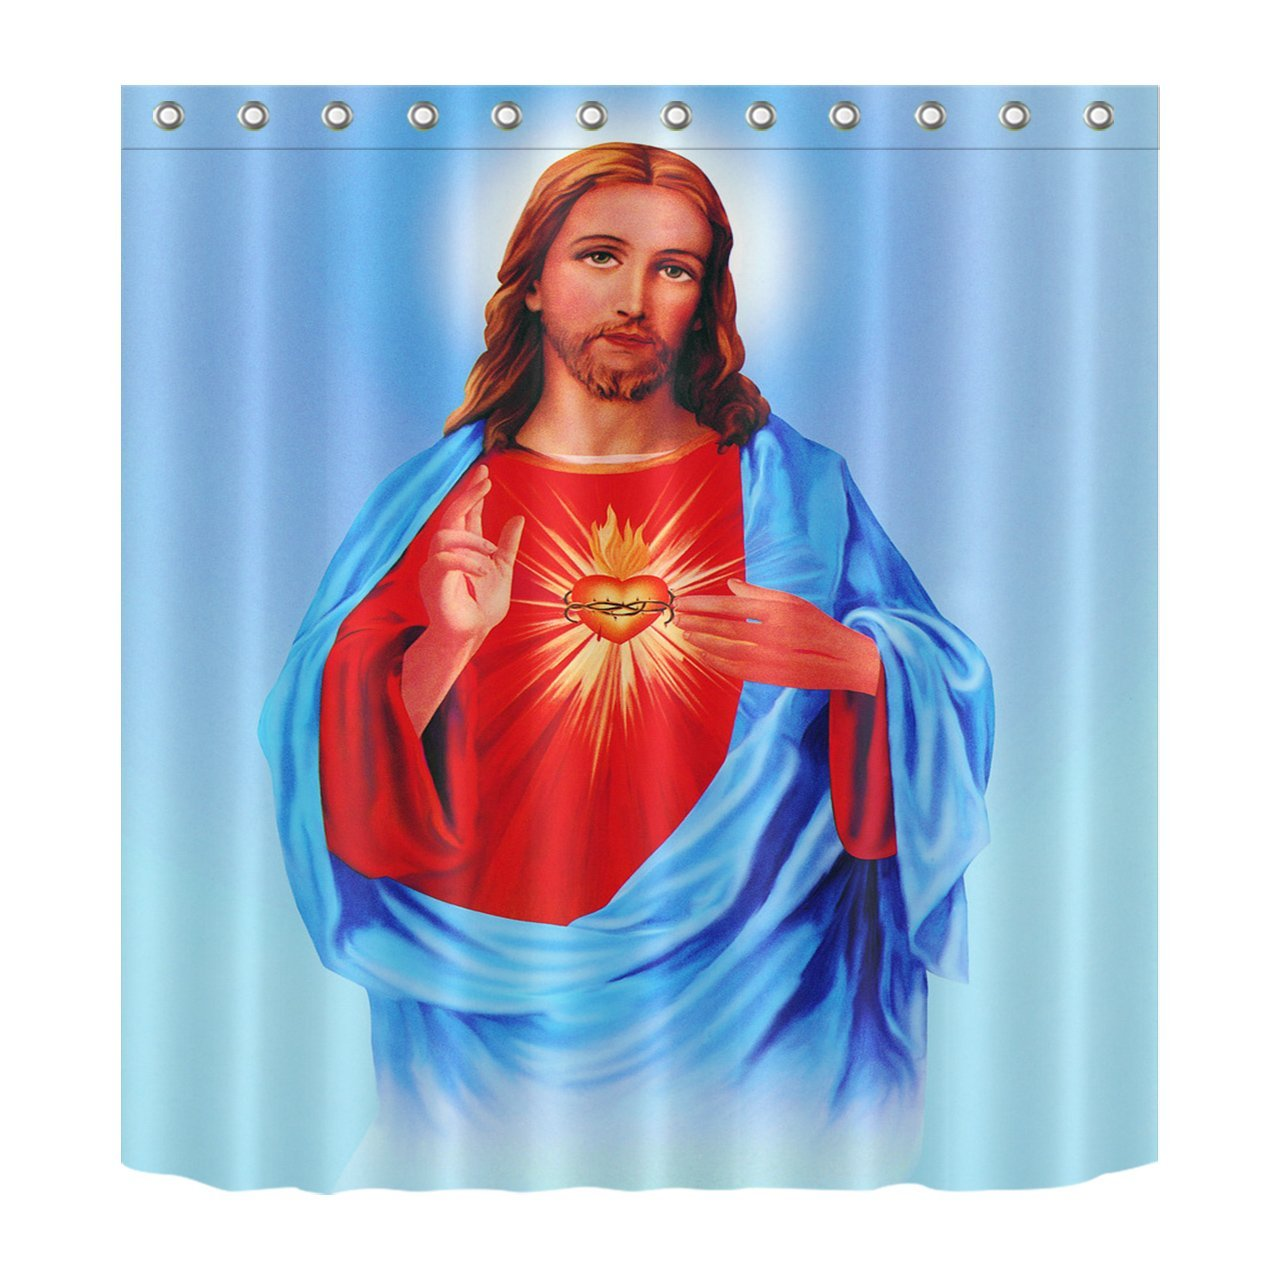 """LB Son of God Jesus Christ Bless Decoration Shower Curtain Polyester Fabric 3D 72x72"""" Mildew Resistant Waterproof Blue Red Merciful Lord Fiery Heart Bathroom Bath Curtains"""